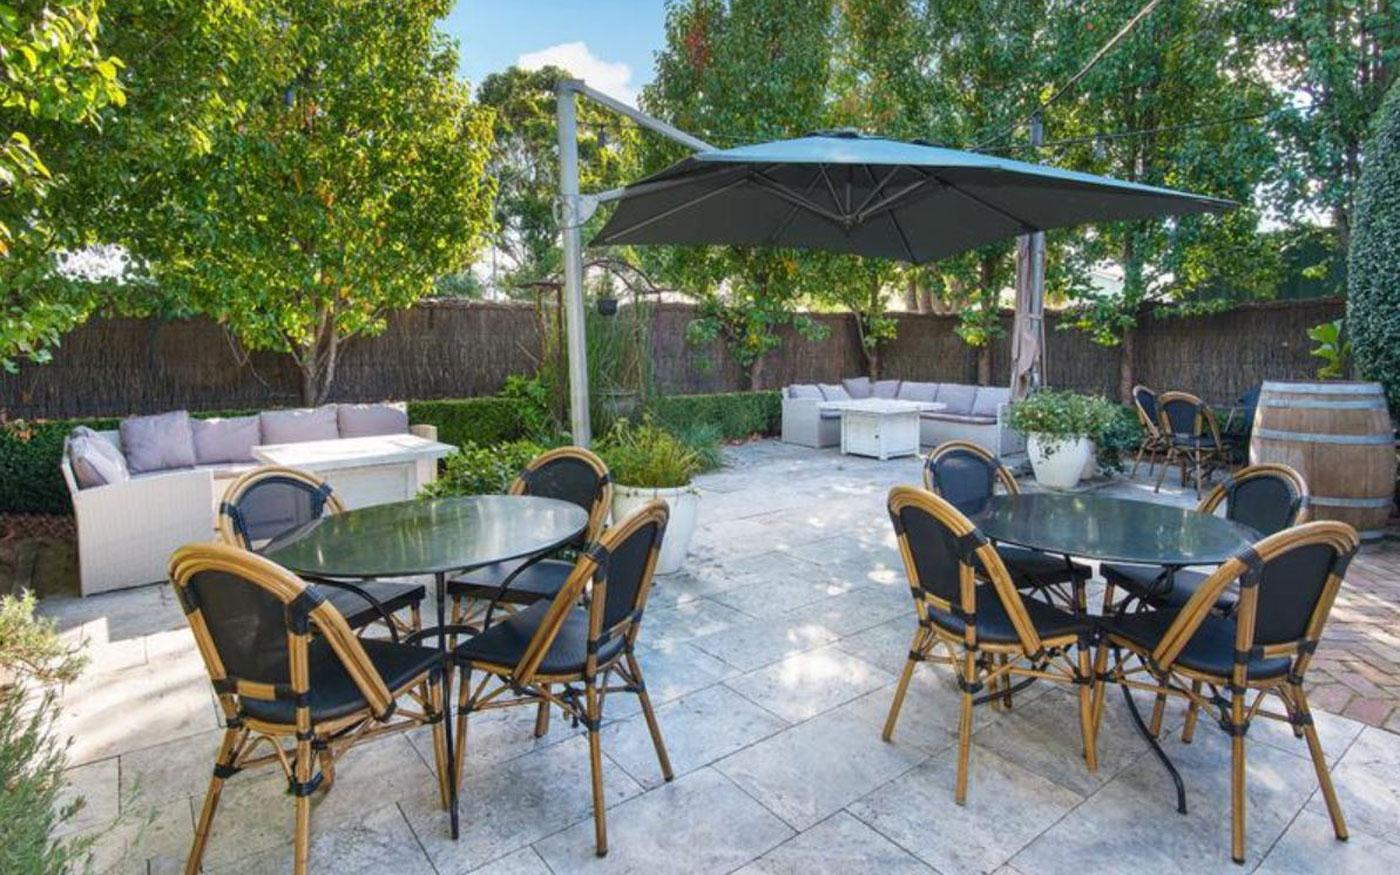 Turrumurra Restaurant and Pub